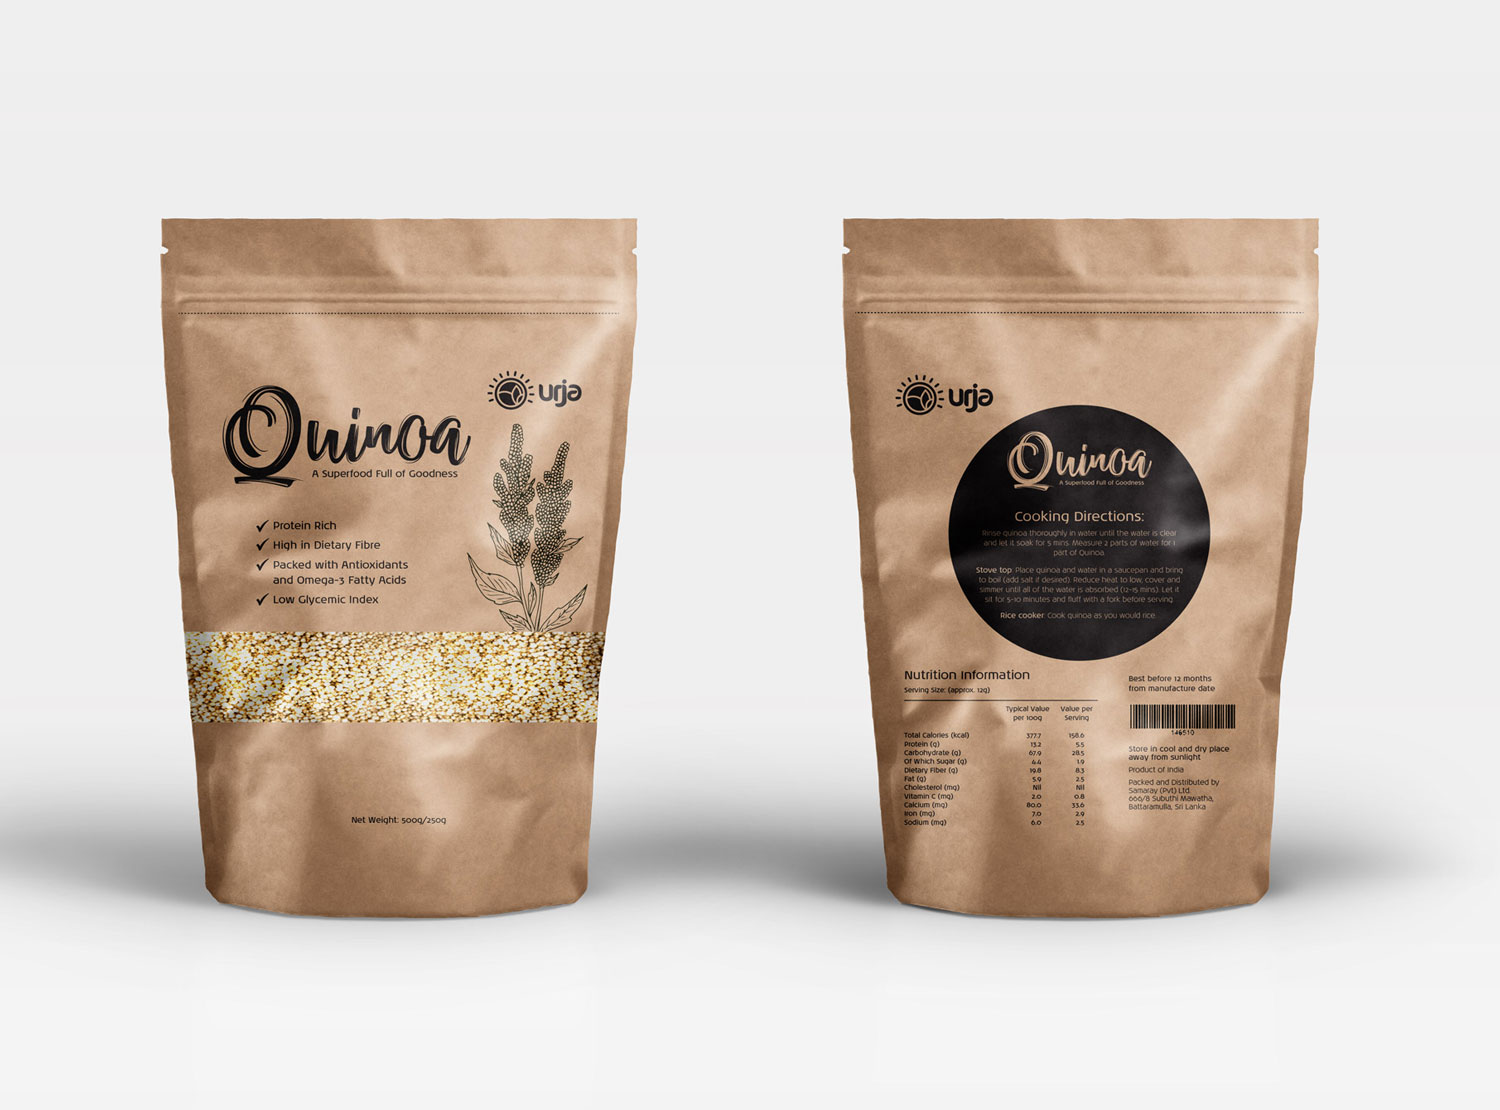 Organic Food packaging design for quinoa by Urja